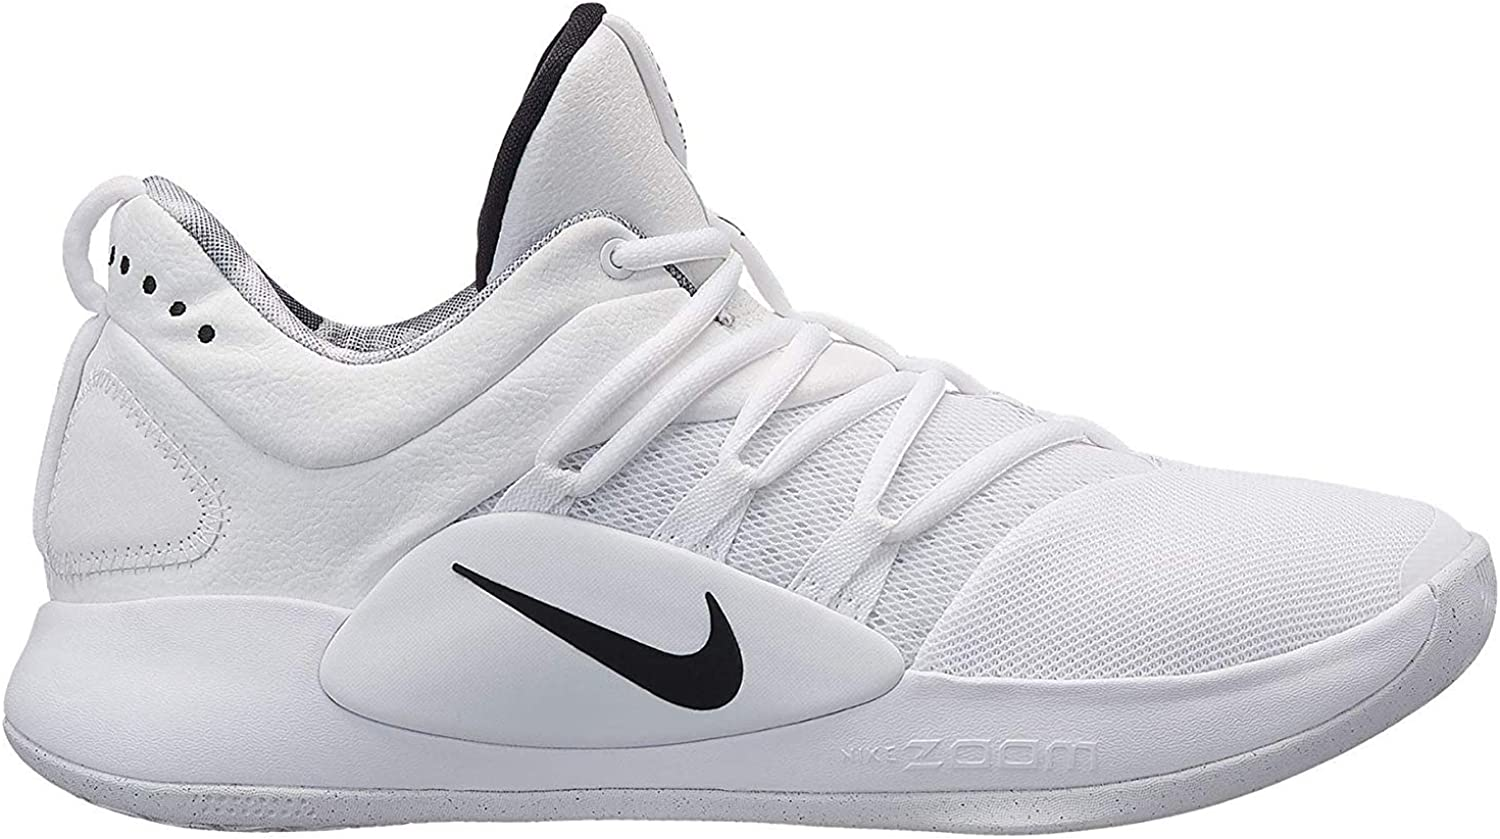 Nike Men's Hyperdunk X Low Team Basketball shoes